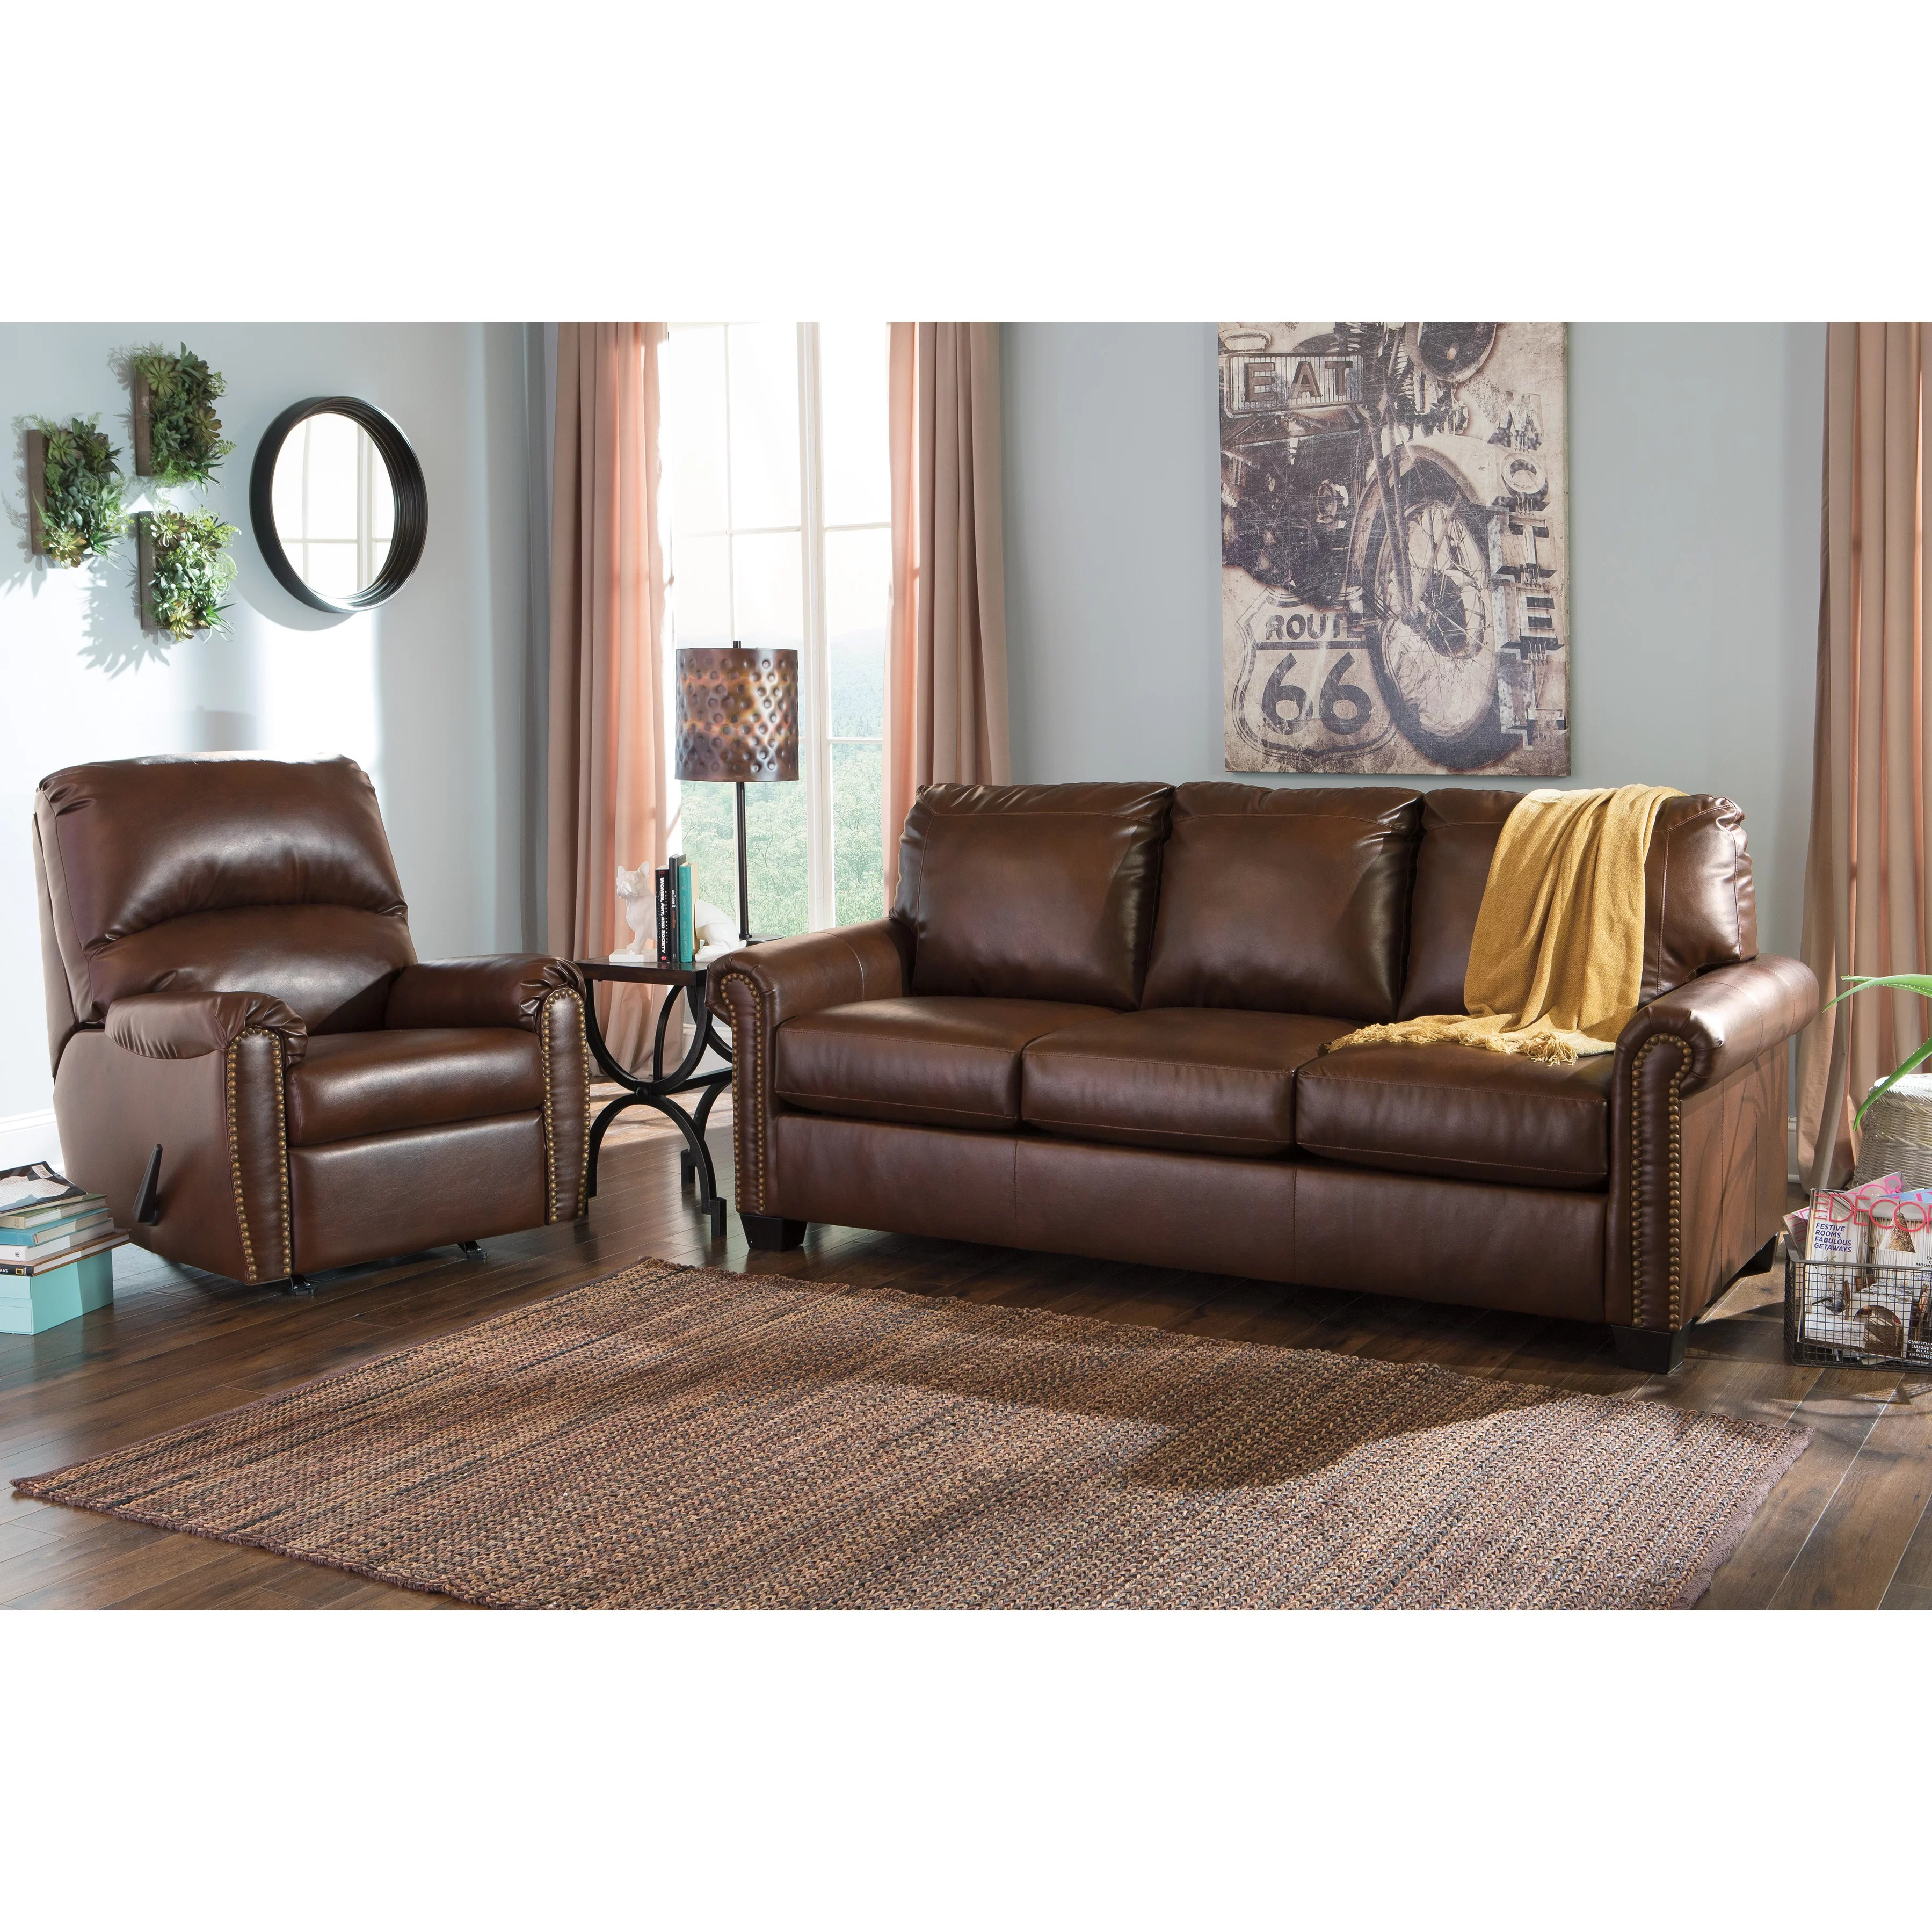 ashley furniture durablend sleeper sofa england leather sectional signature design by lottie queen